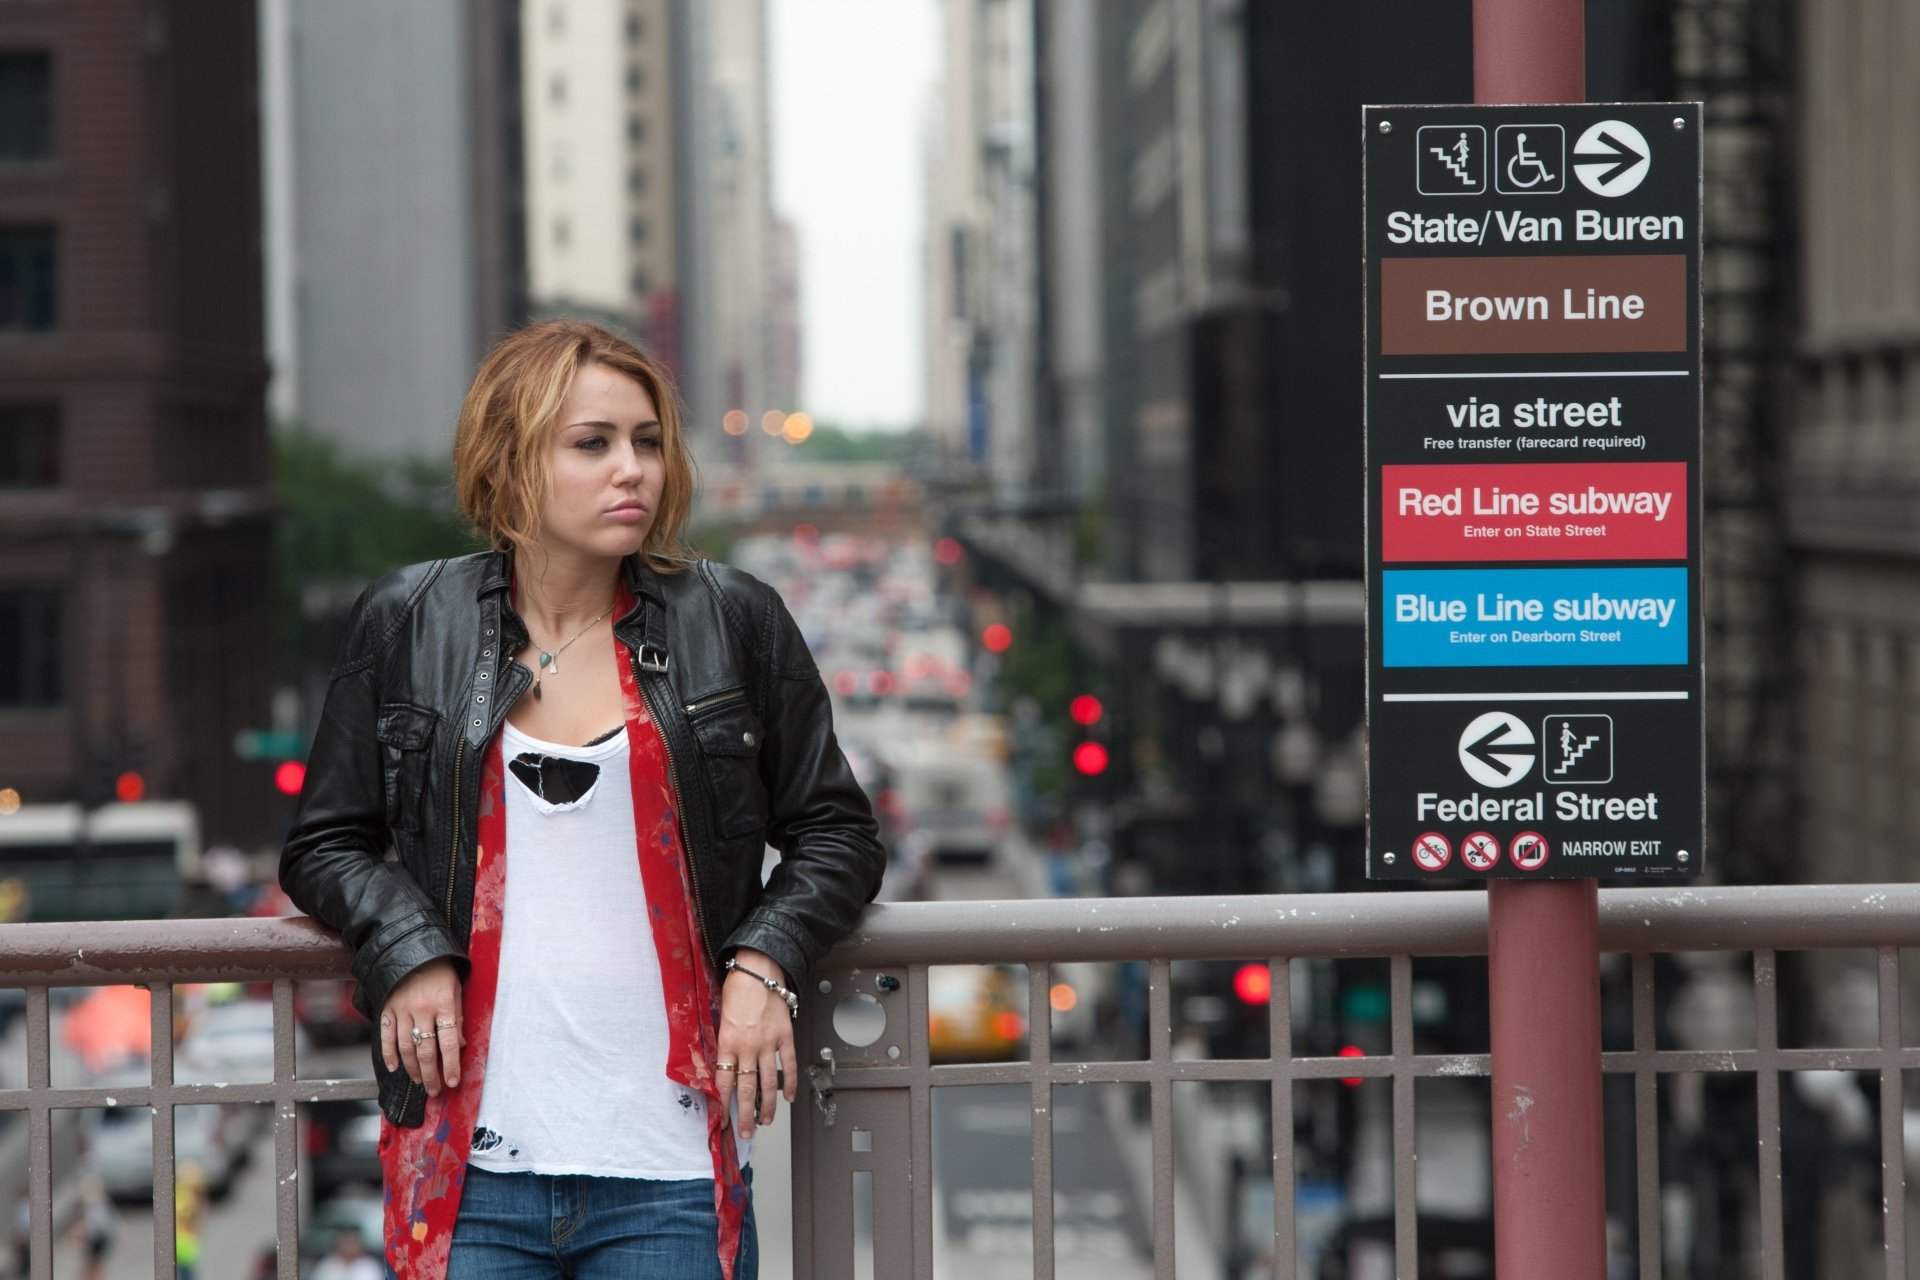 miley cyrus in the movie lol 4k ultra hd wallpaper and